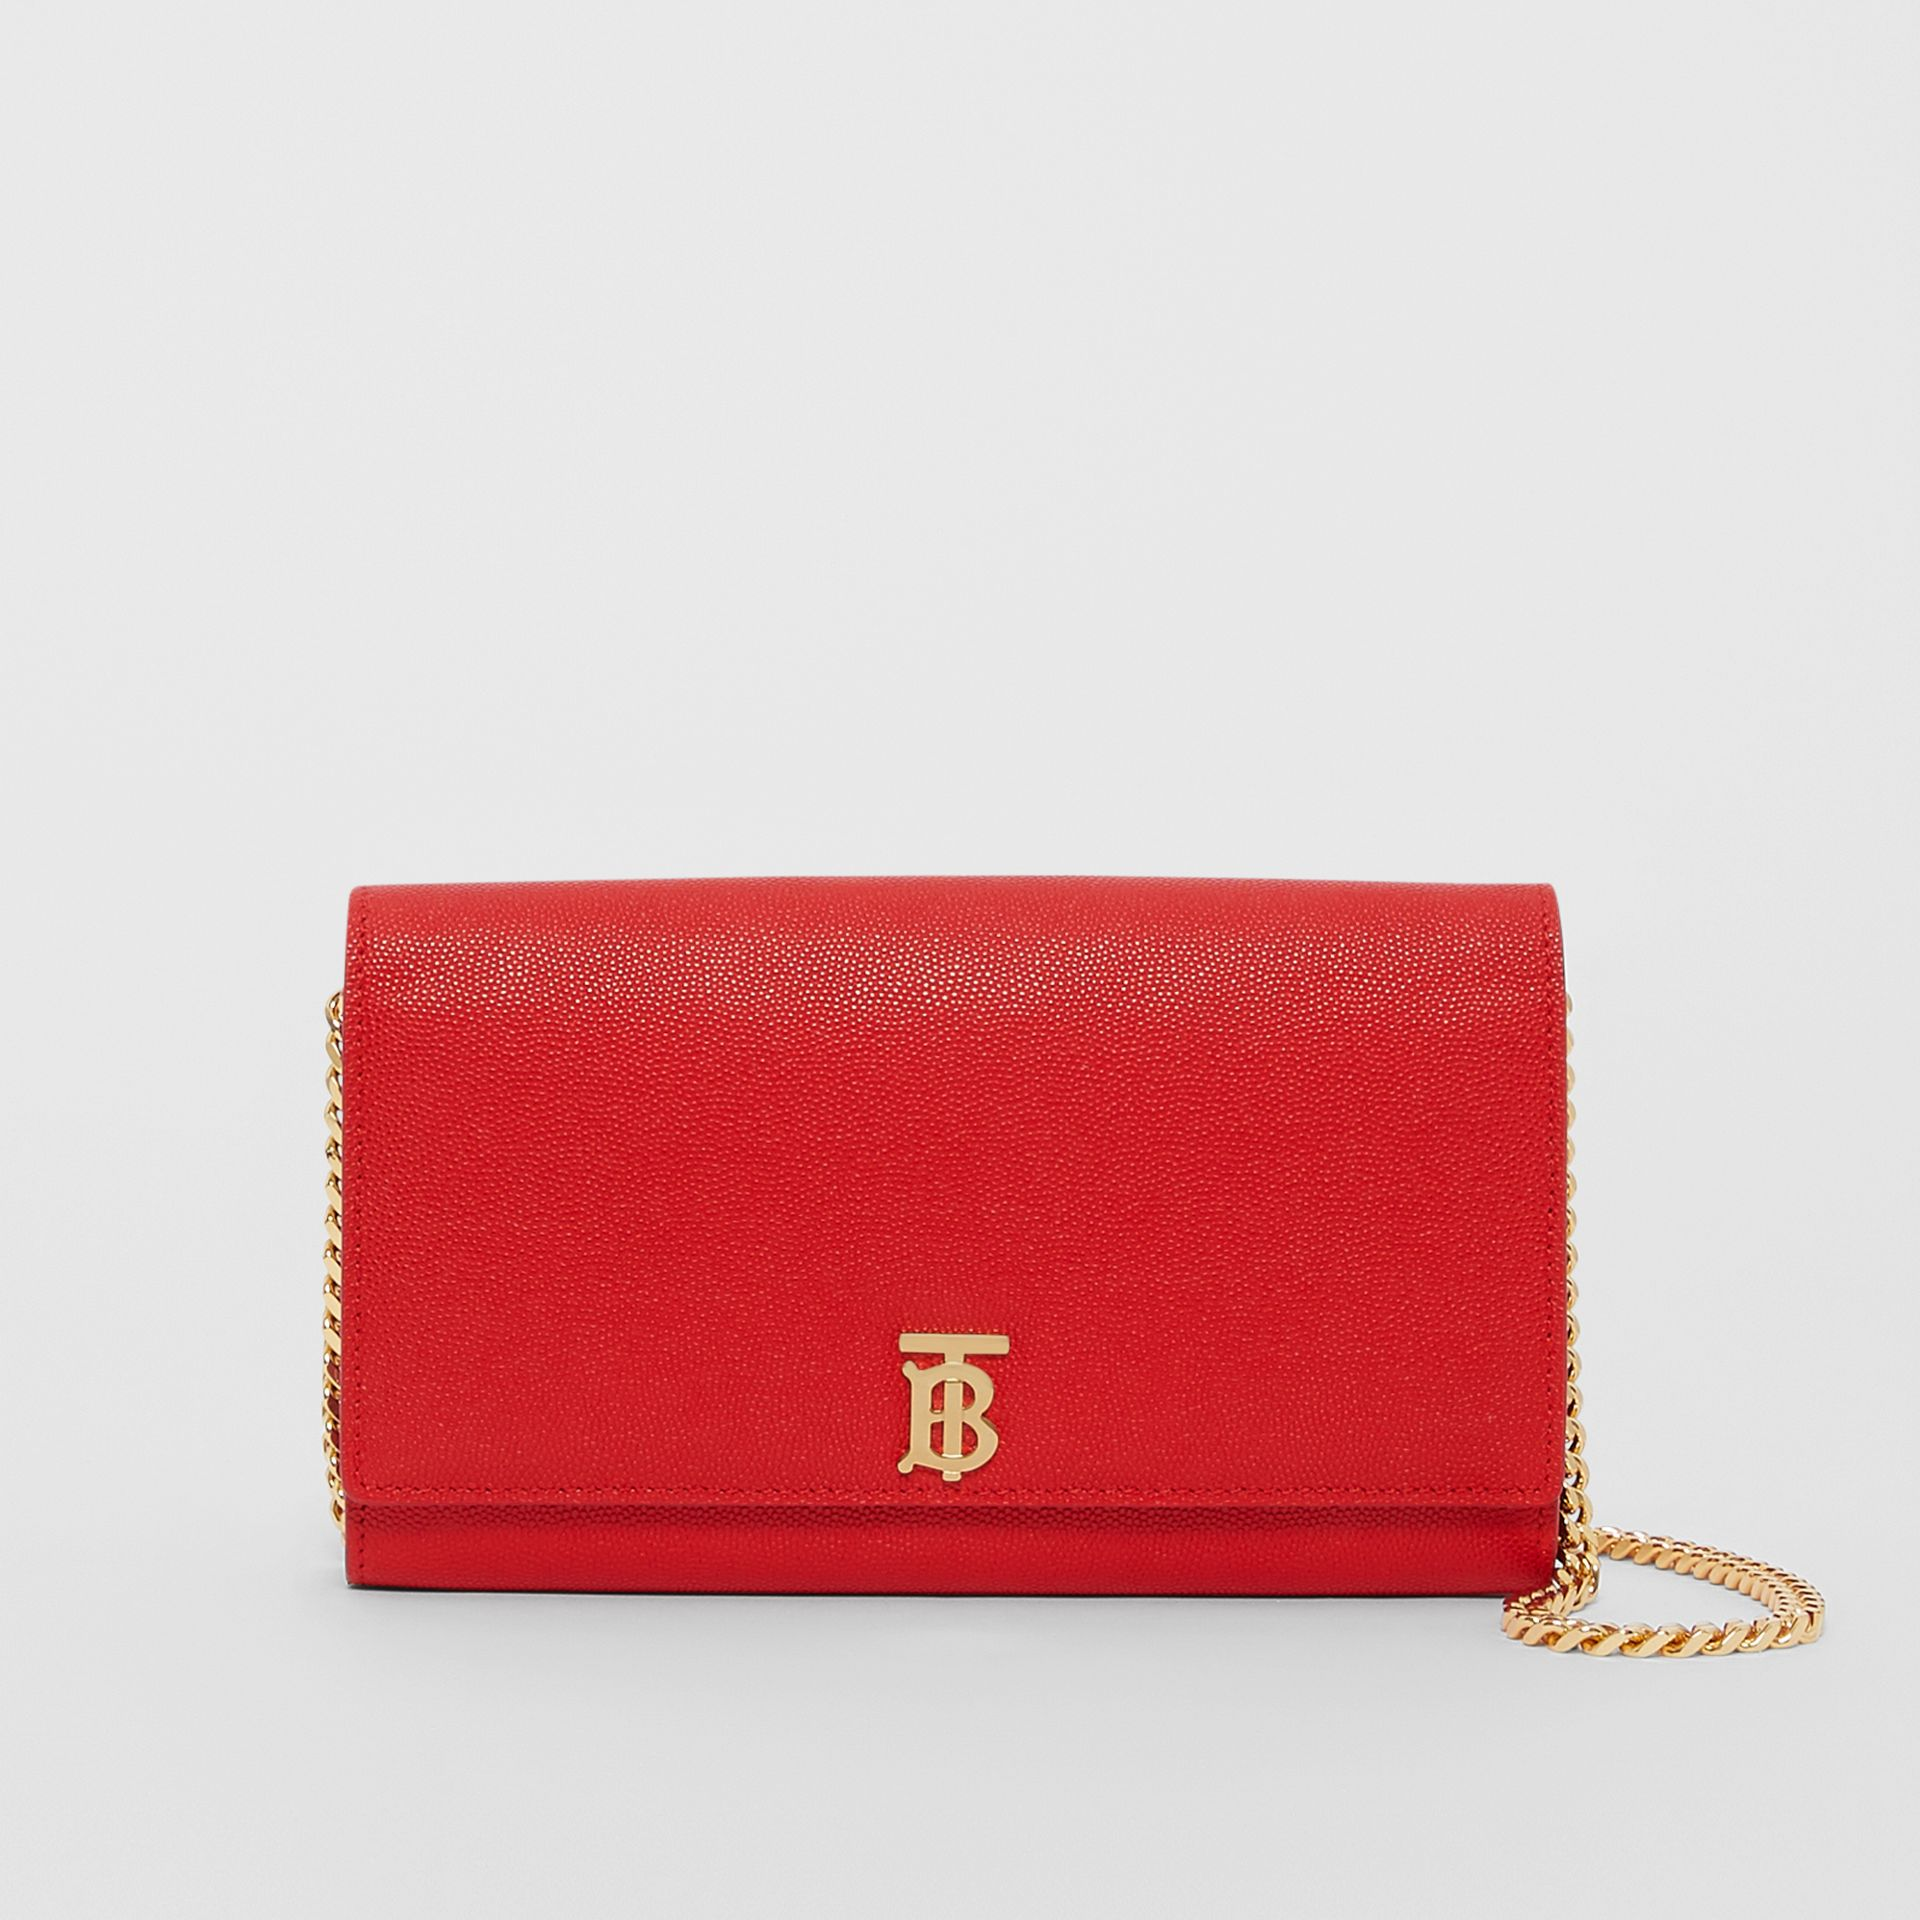 Portefeuille en cuir Monogram avec sangle amovible (Rouge Vif) - Femme | Burberry - photo de la galerie 0